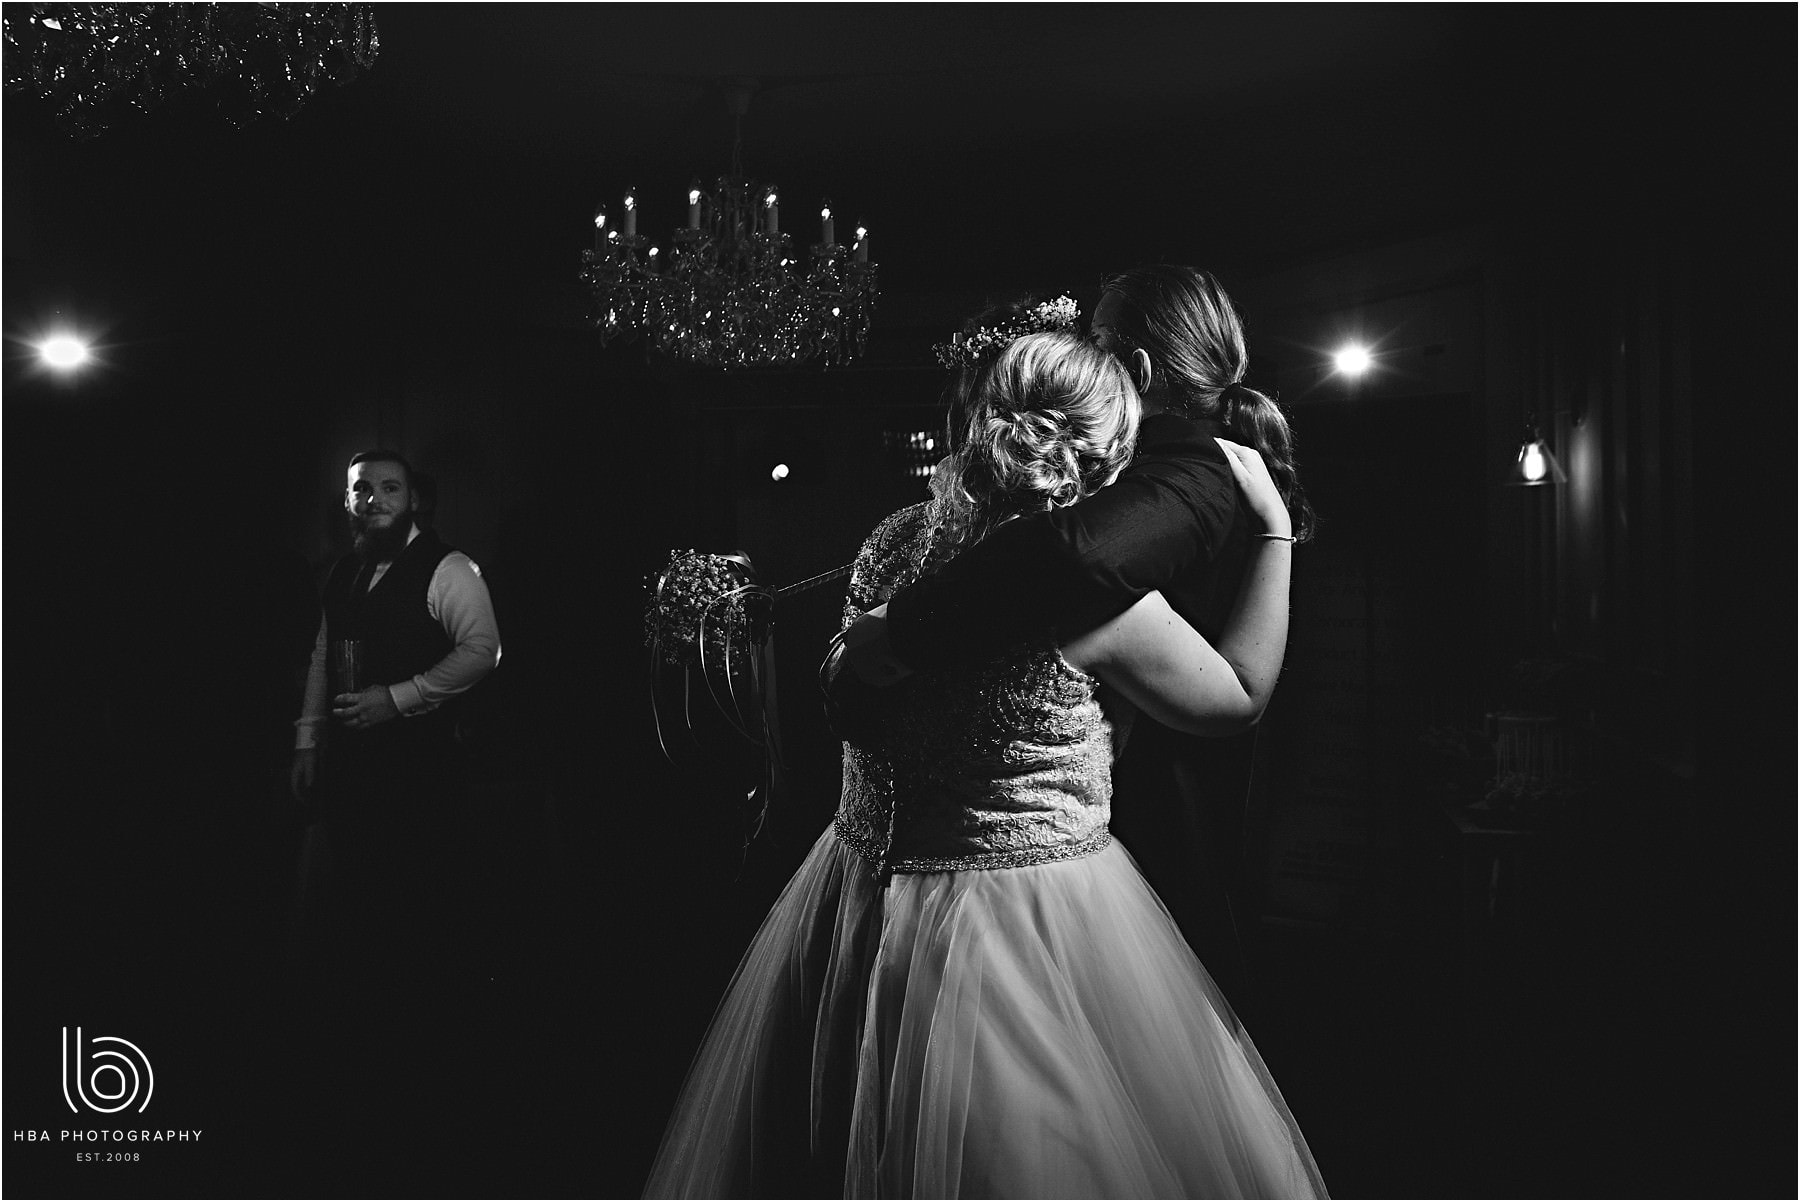 the bride dancing with her dad